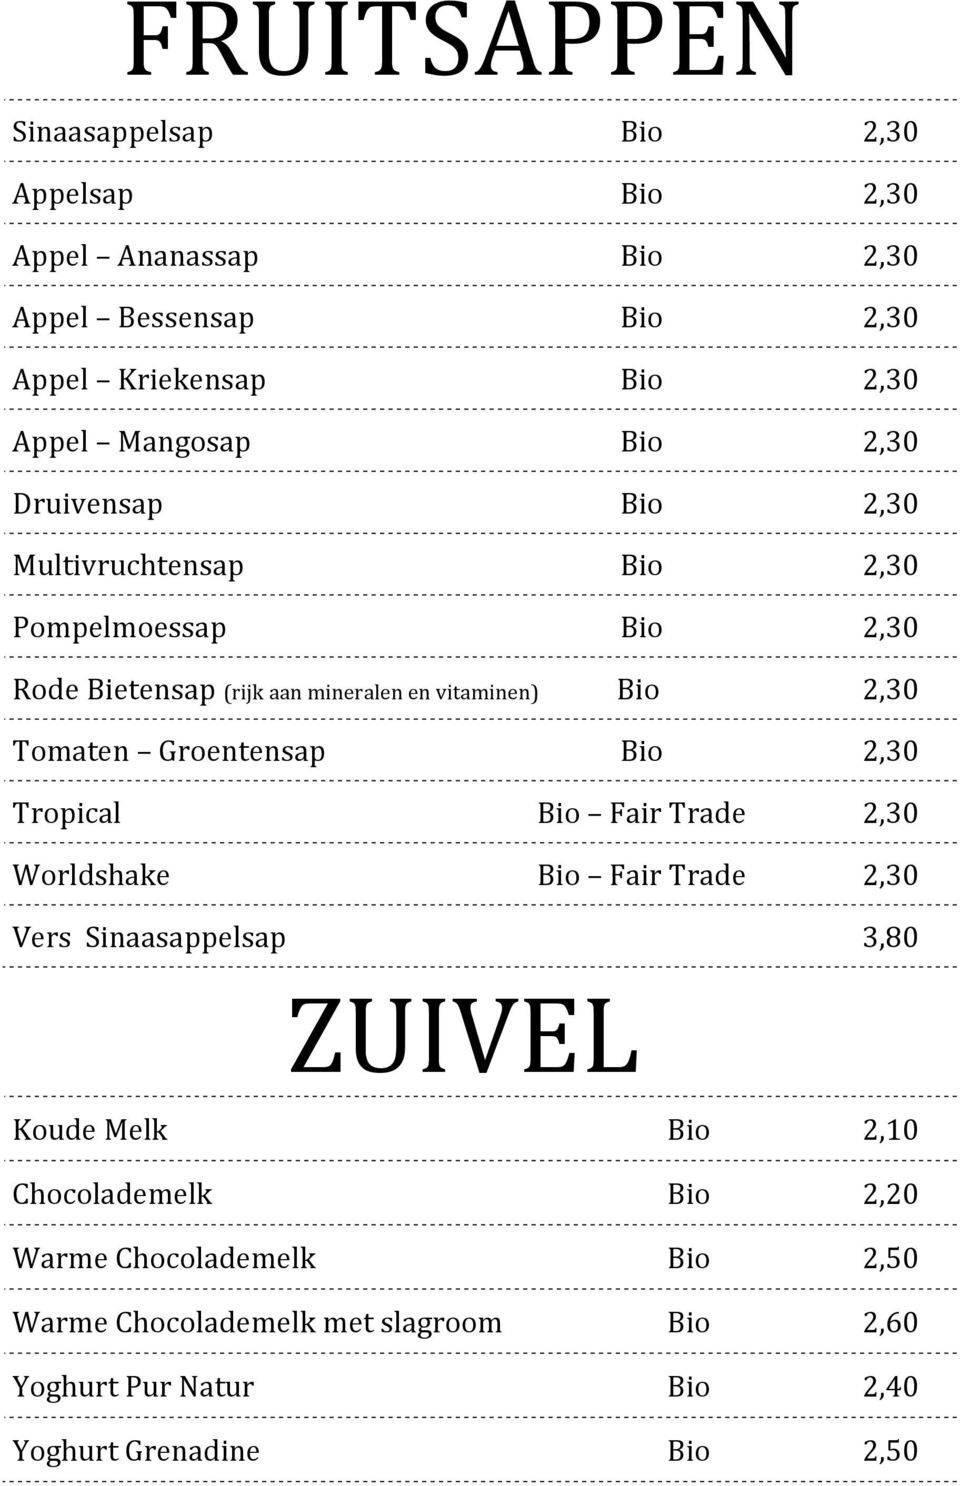 2,30 Tomaten Groentensap Bio 2,30 Tropical Bio Fair Trade 2,30 Worldshake Bio Fair Trade 2,30 Vers Sinaasappelsap 3,80 ZUIVEL Koude Melk